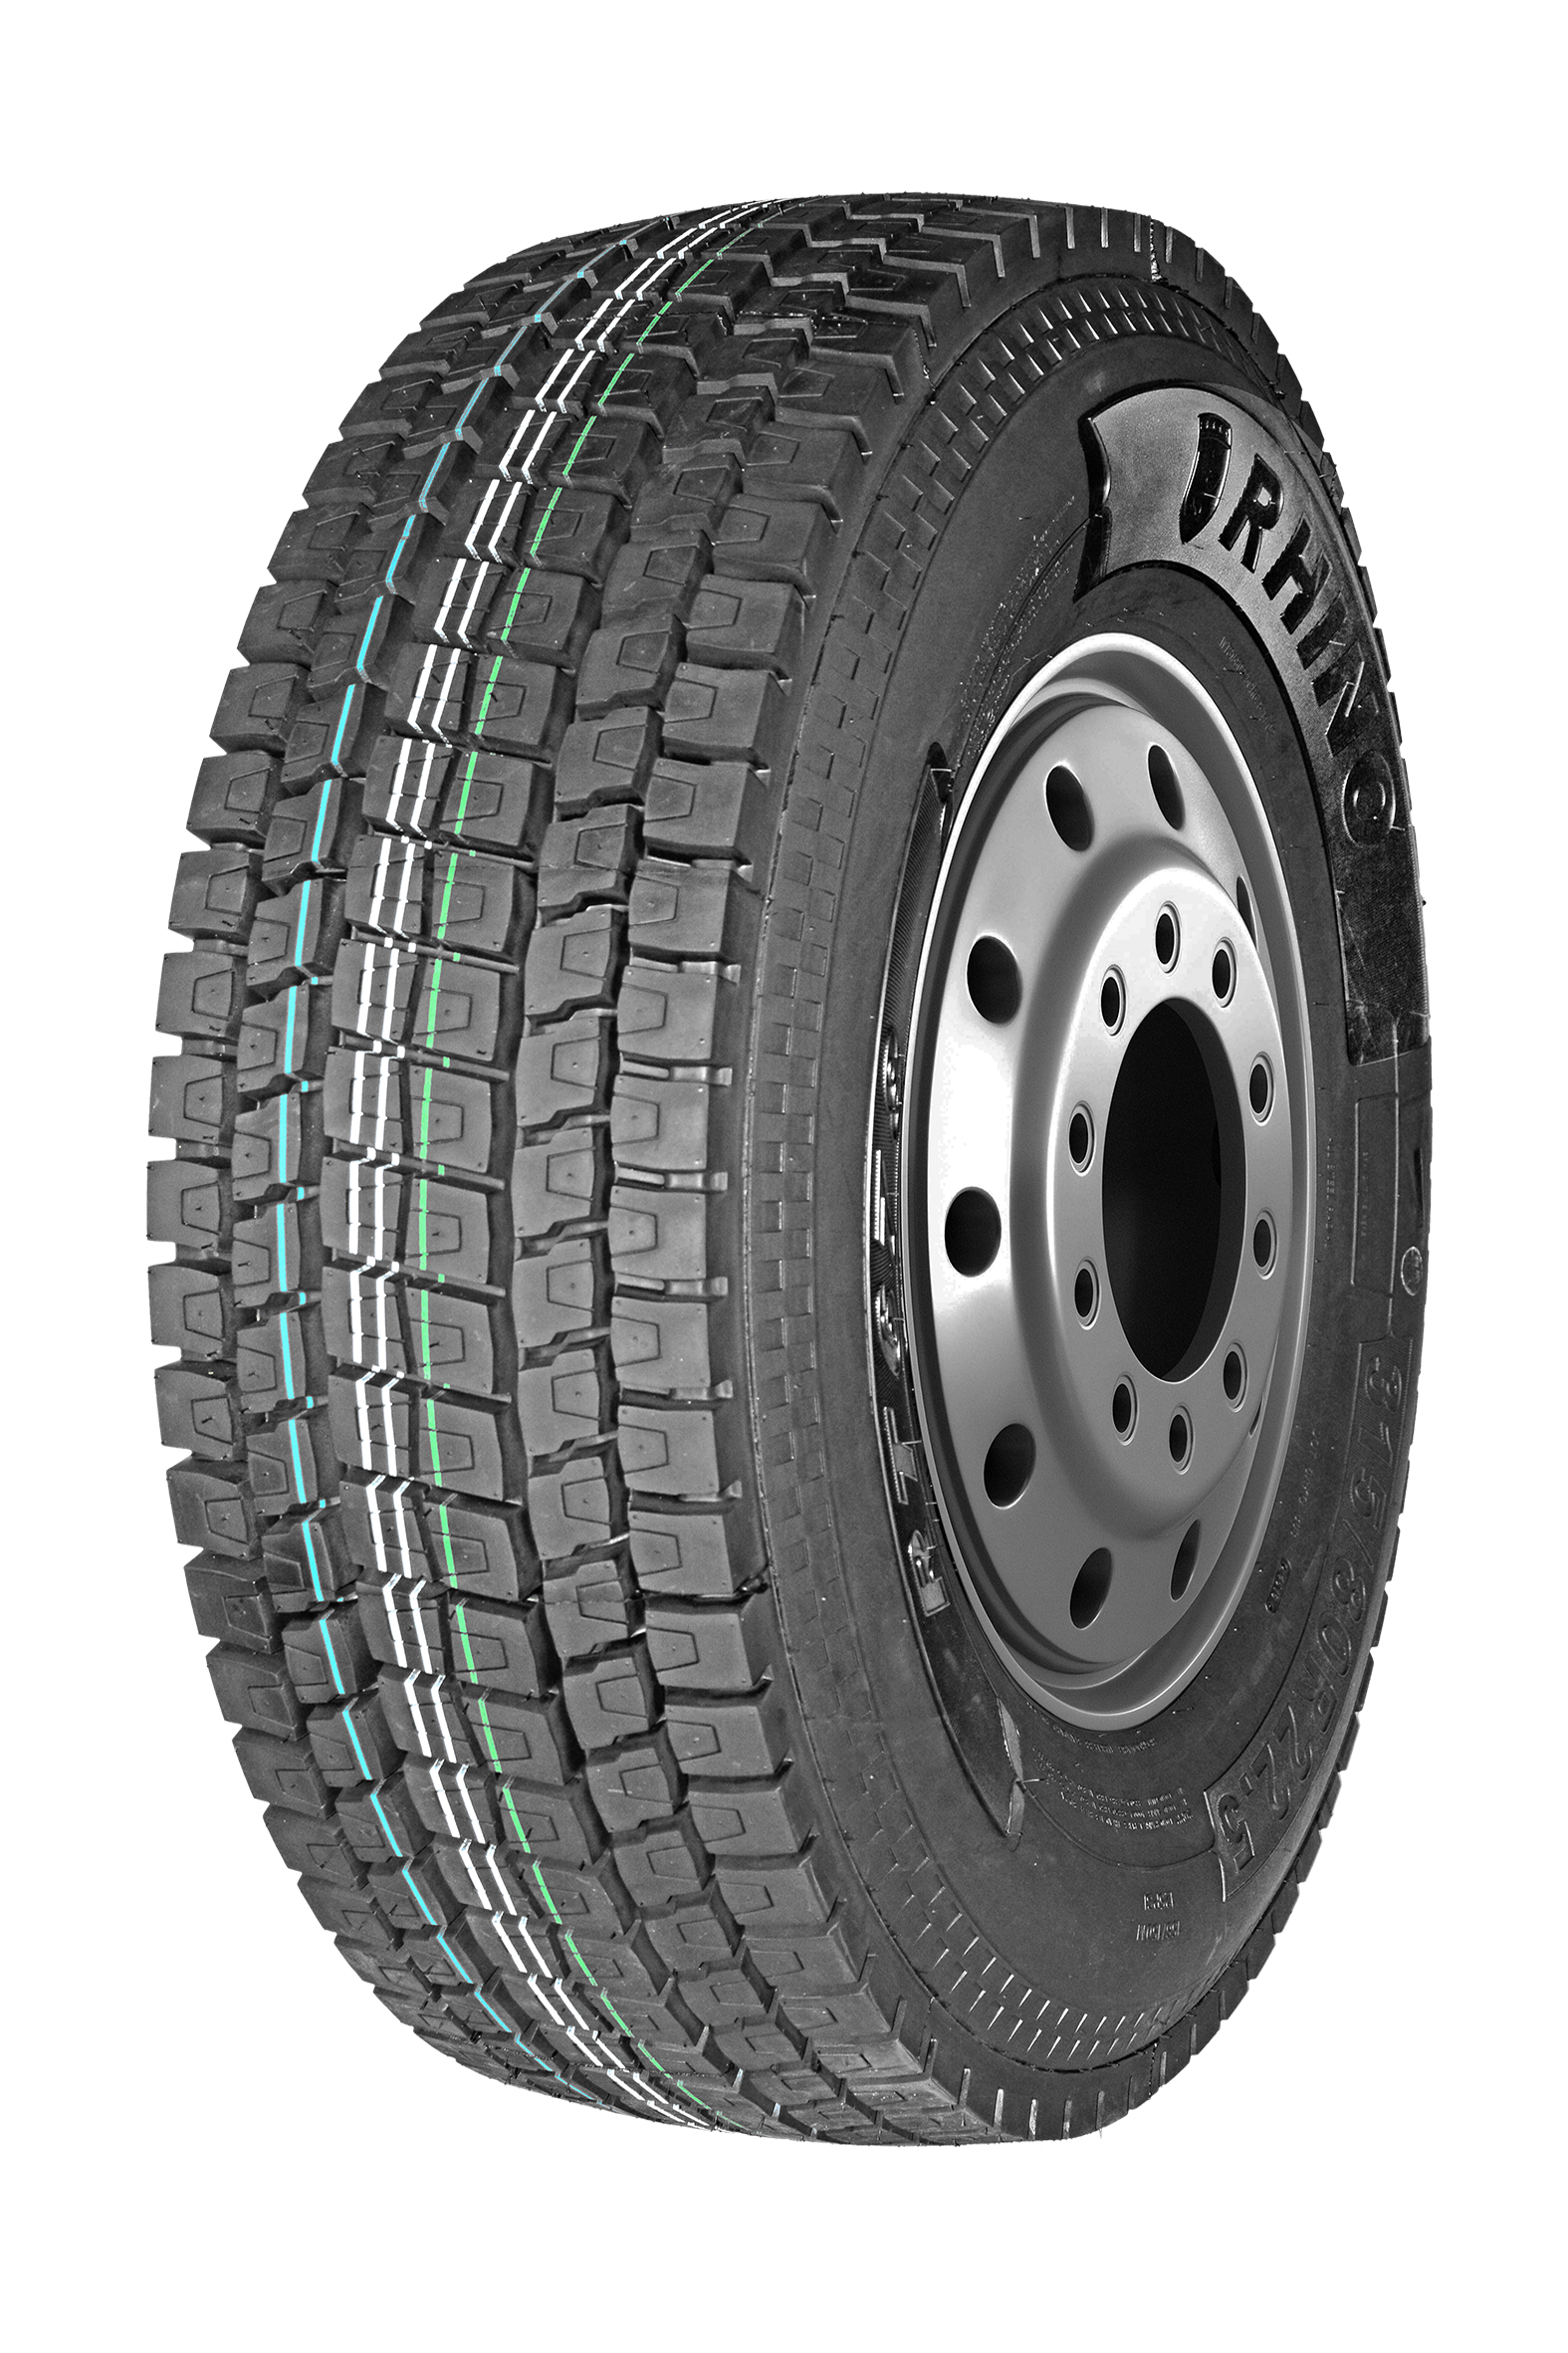 Trucktiresupplier Hashtag Rhinotire 11r22 5 11r24 5 295 75r22 5 285 75r24 5 For South America And North America Market S Heavy Duty Truck Truck Tyres Tire